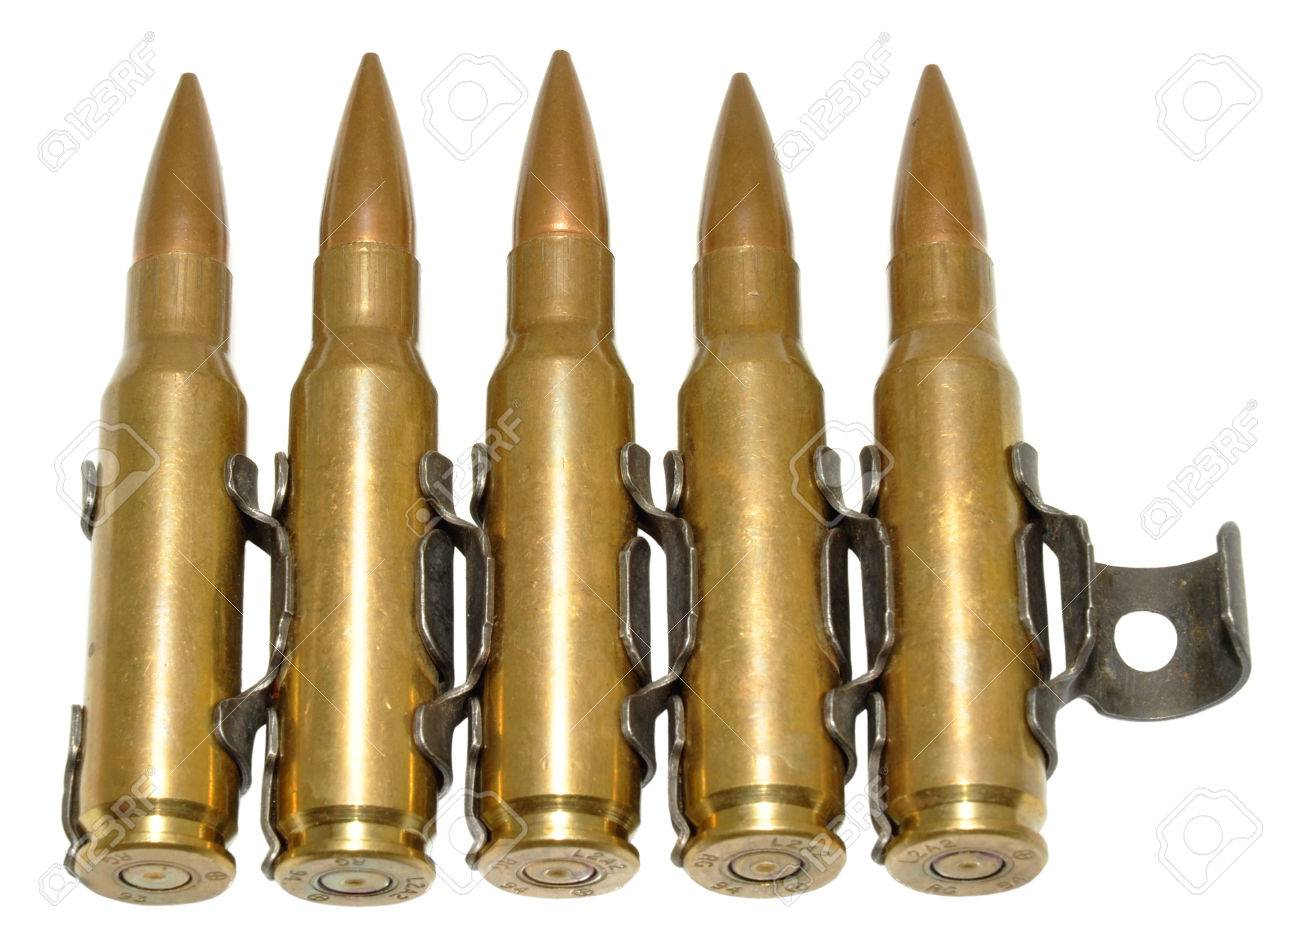 Five Rounds Of 303 Calibre Bullets, Isolated Stock Photo, Picture